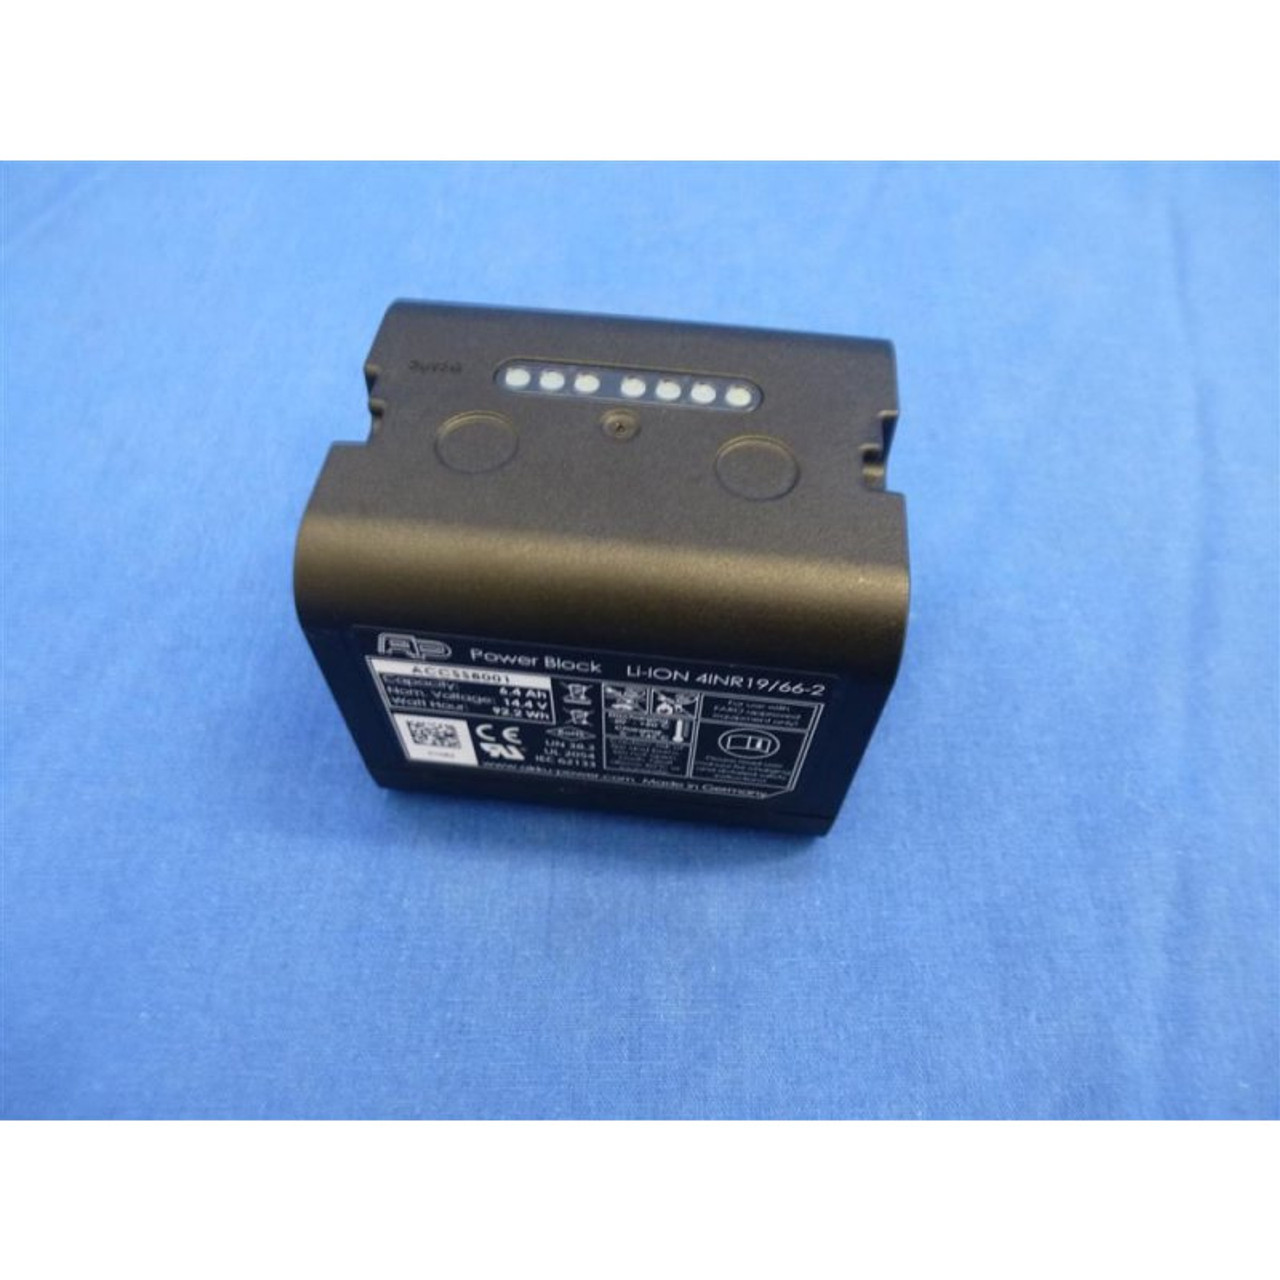 FARO Replacement Battery                                                                                                   (**ONLY SHIPS TO US LOCATIONS**)